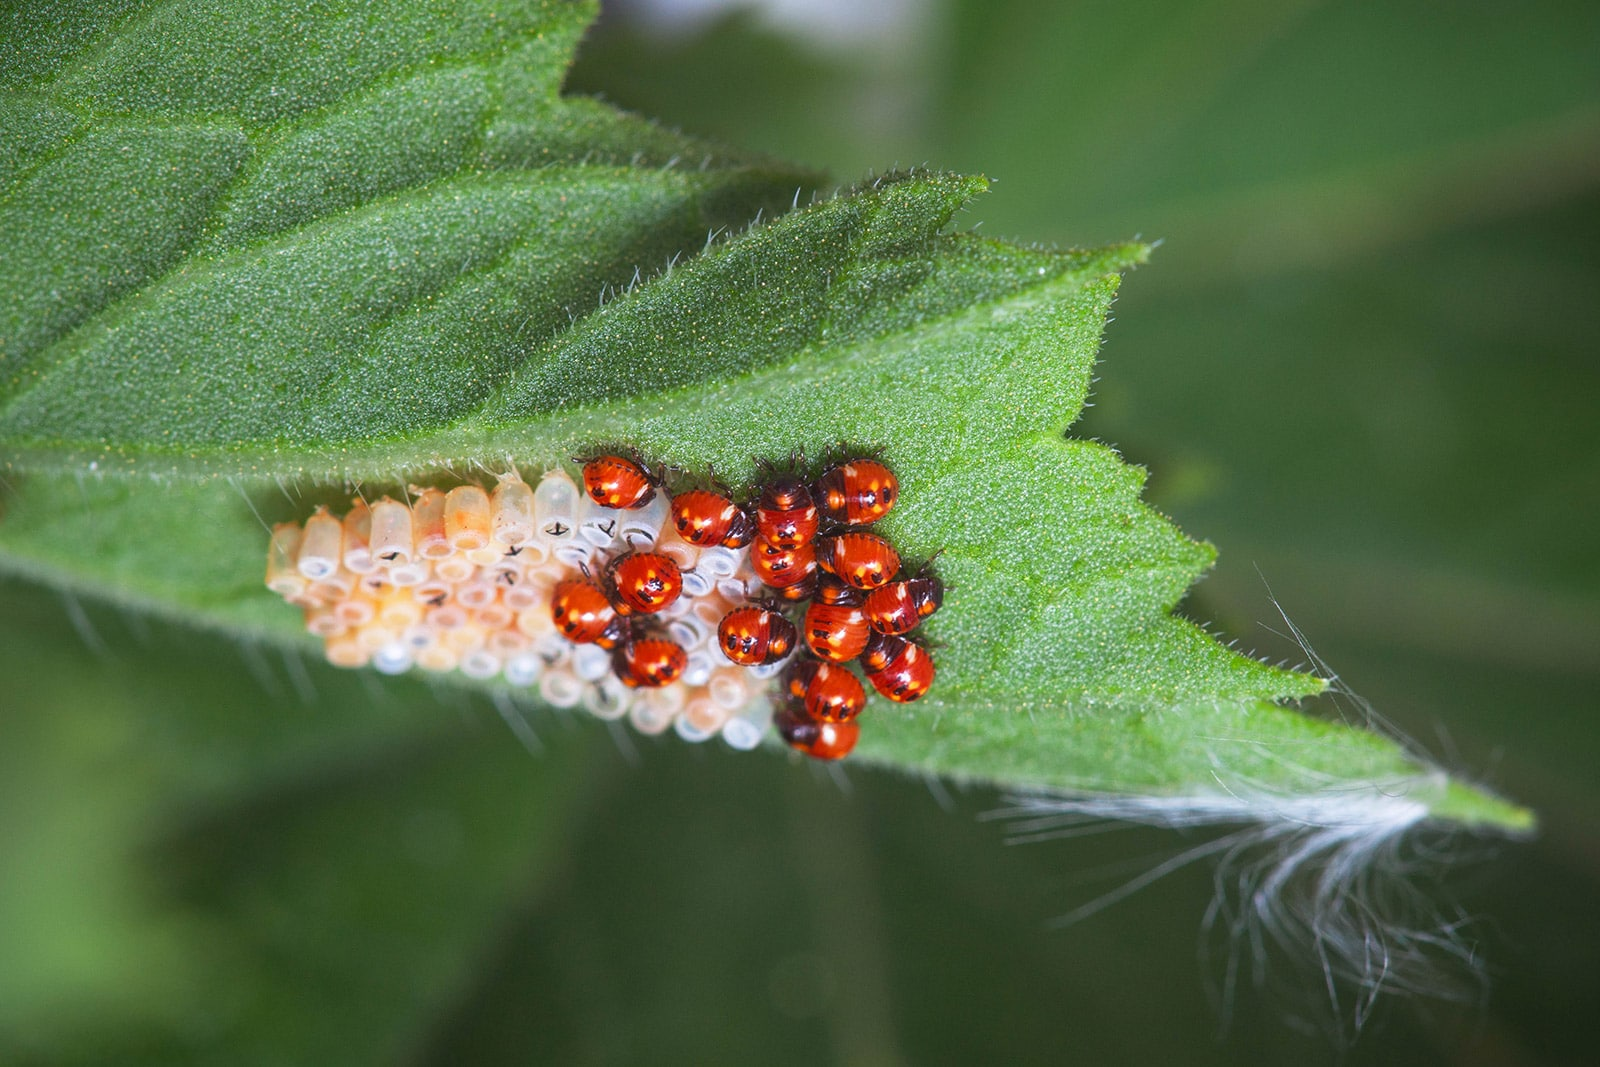 Cluster of ladybugs and ladybug eggs on the underside of a leaf